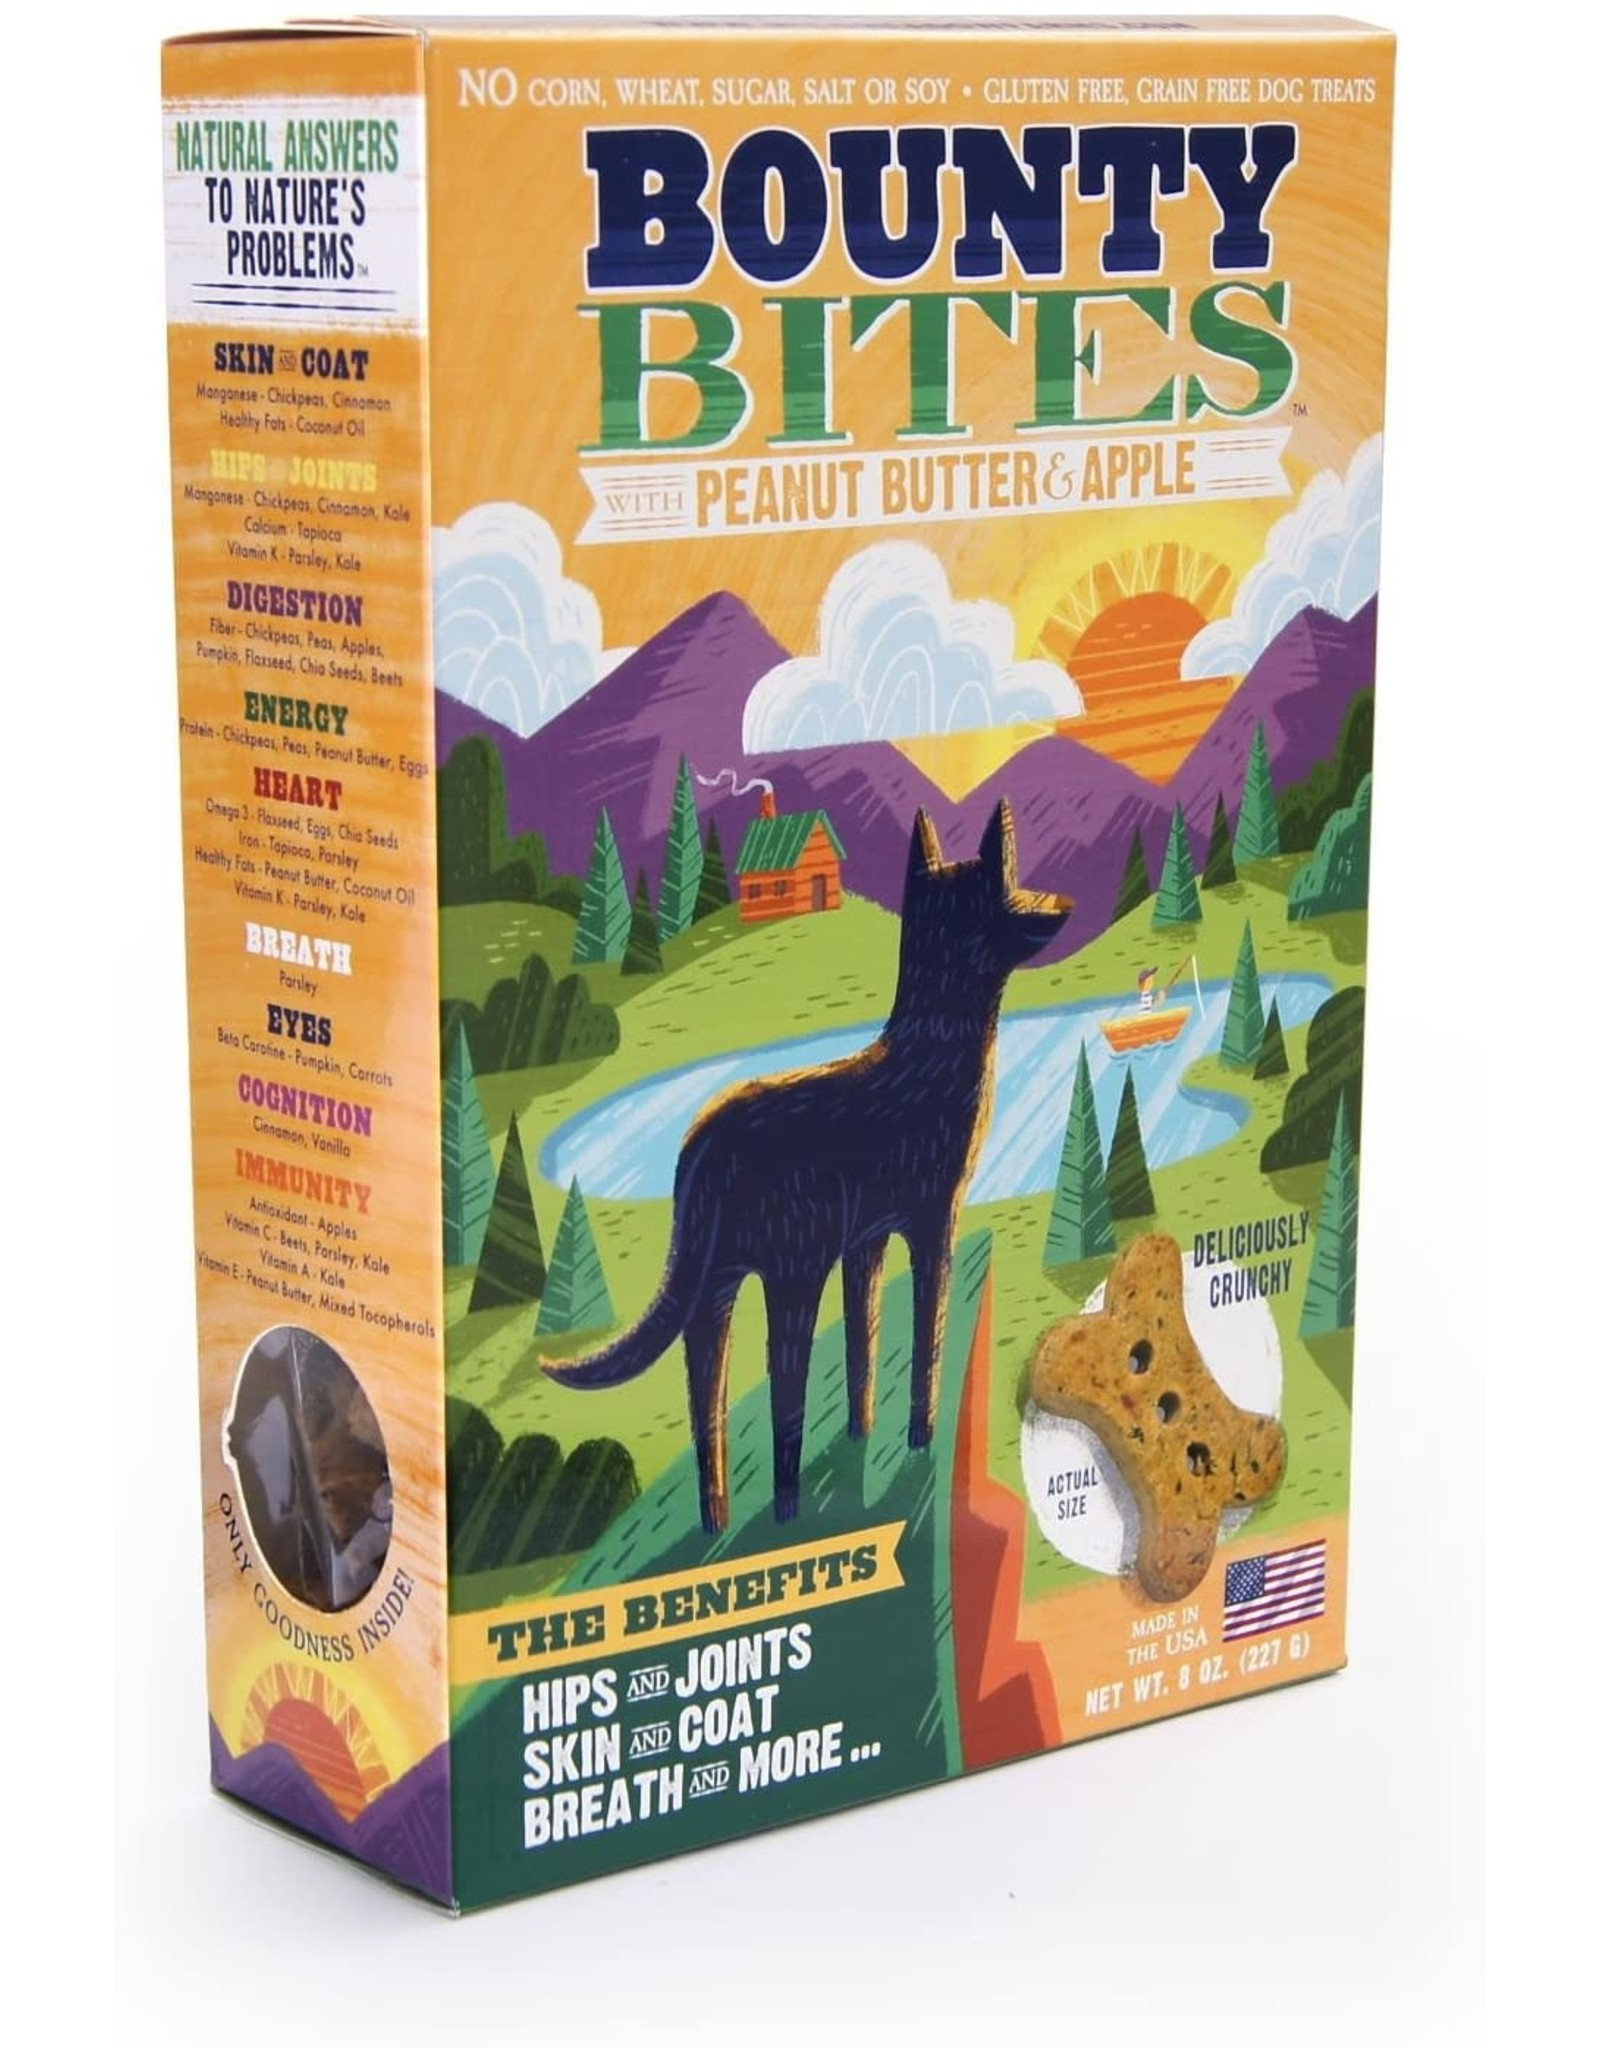 Wild Meadow Farms Bounty Bites Biscuits: Peanut Butter & Apple, 8 oz